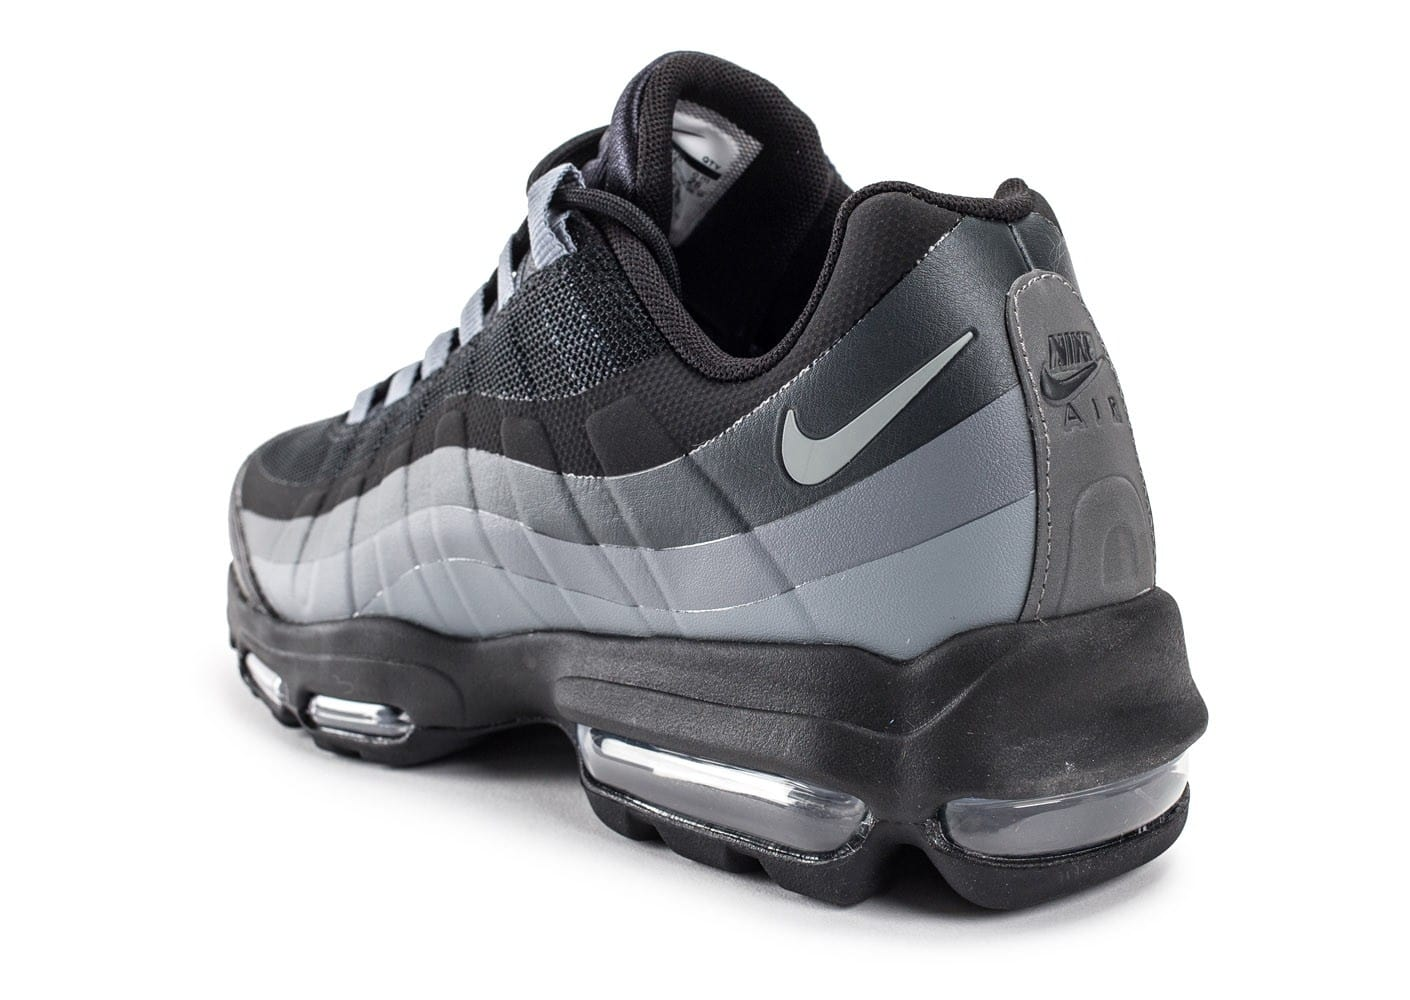 watch 48dd3 cd1d1 Nike Air Max 95 Ultra Essential noire - Chaussures Homme - Chausport ...